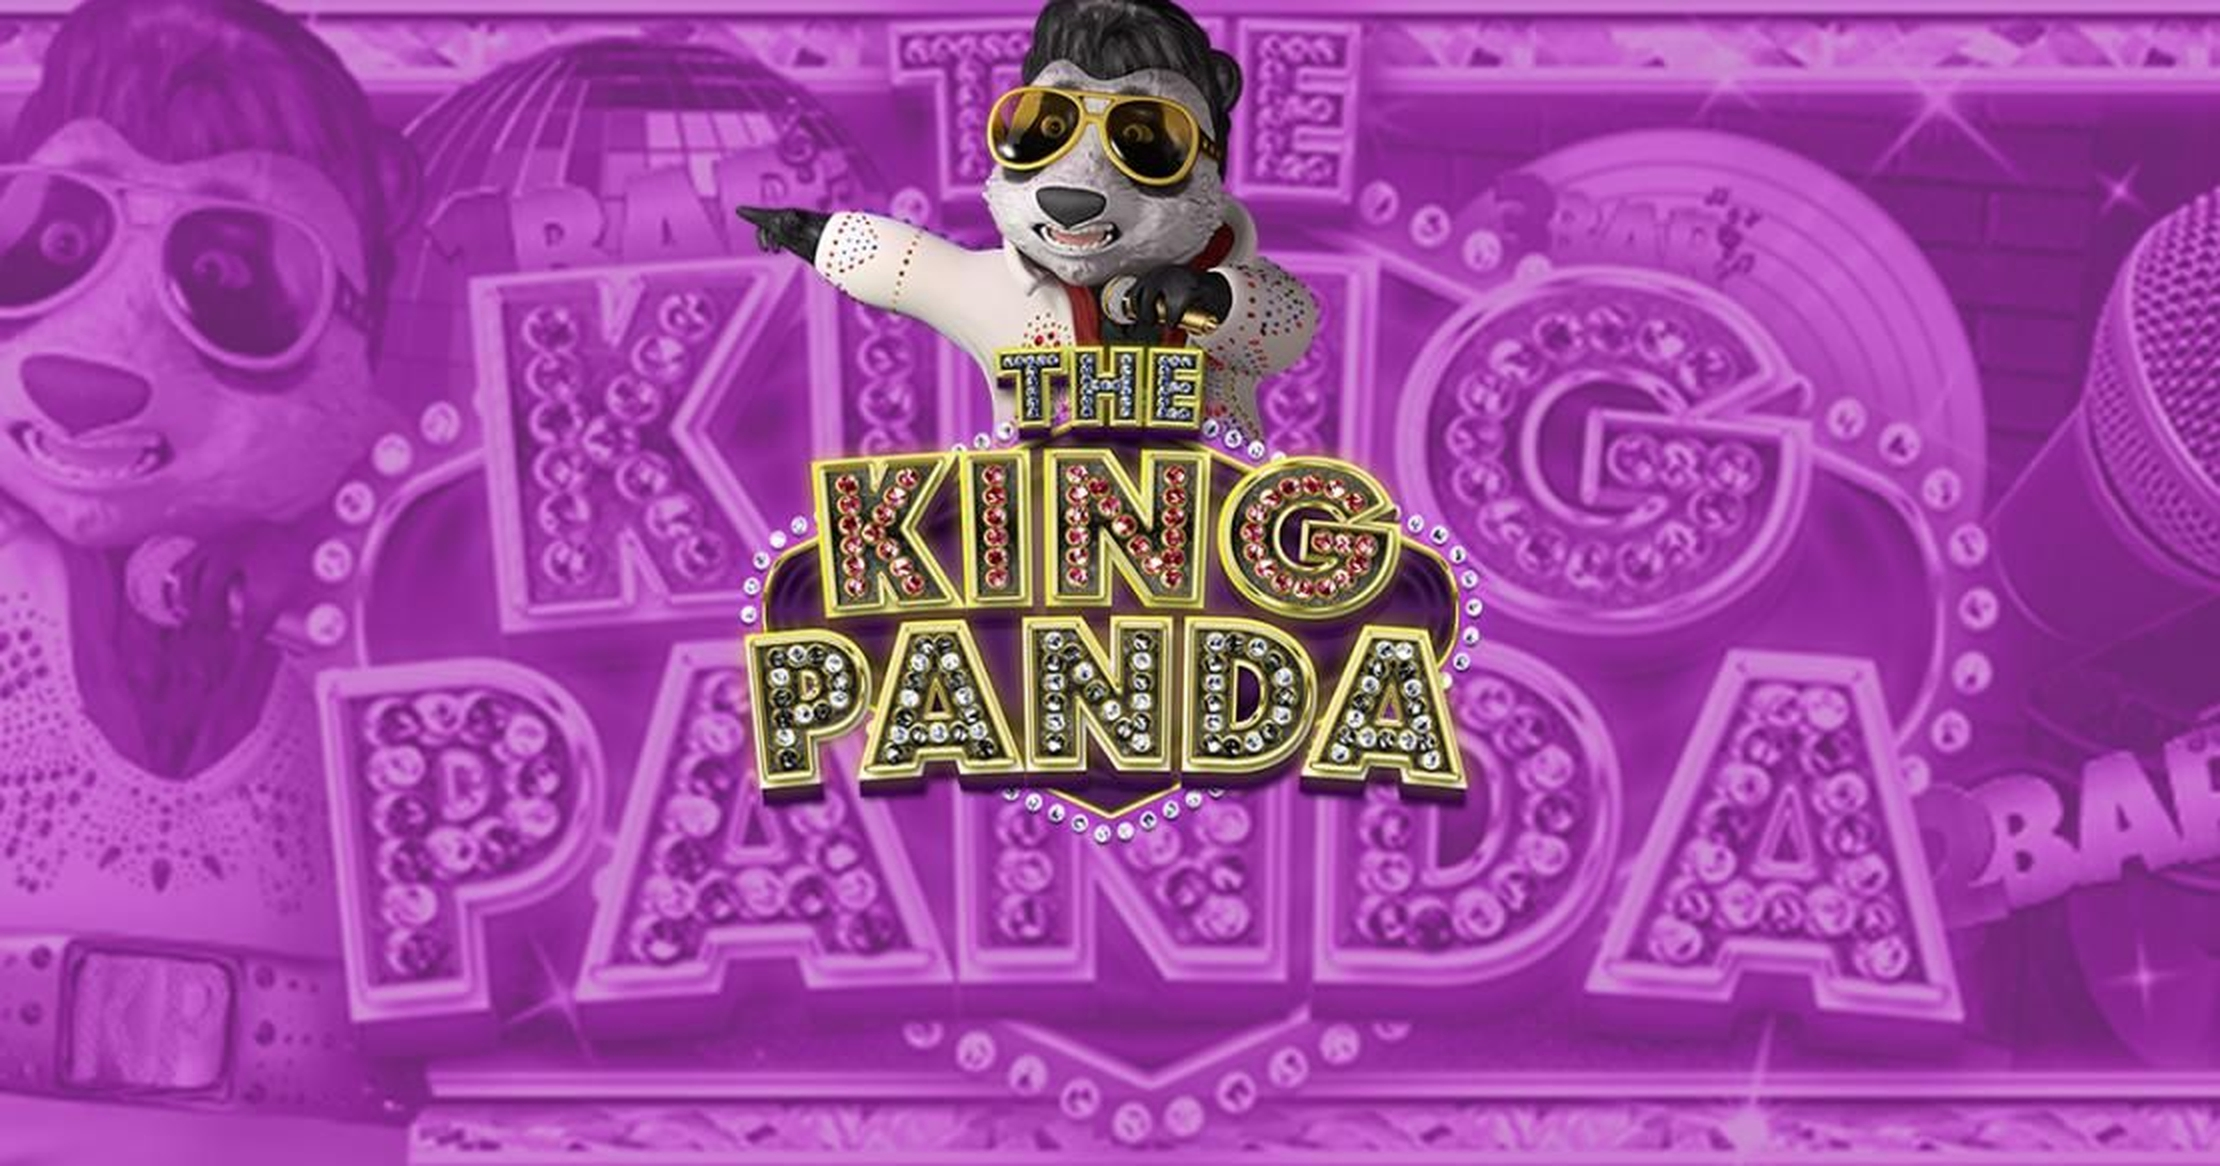 The The King Panda Online Slot Demo Game by Booming Games